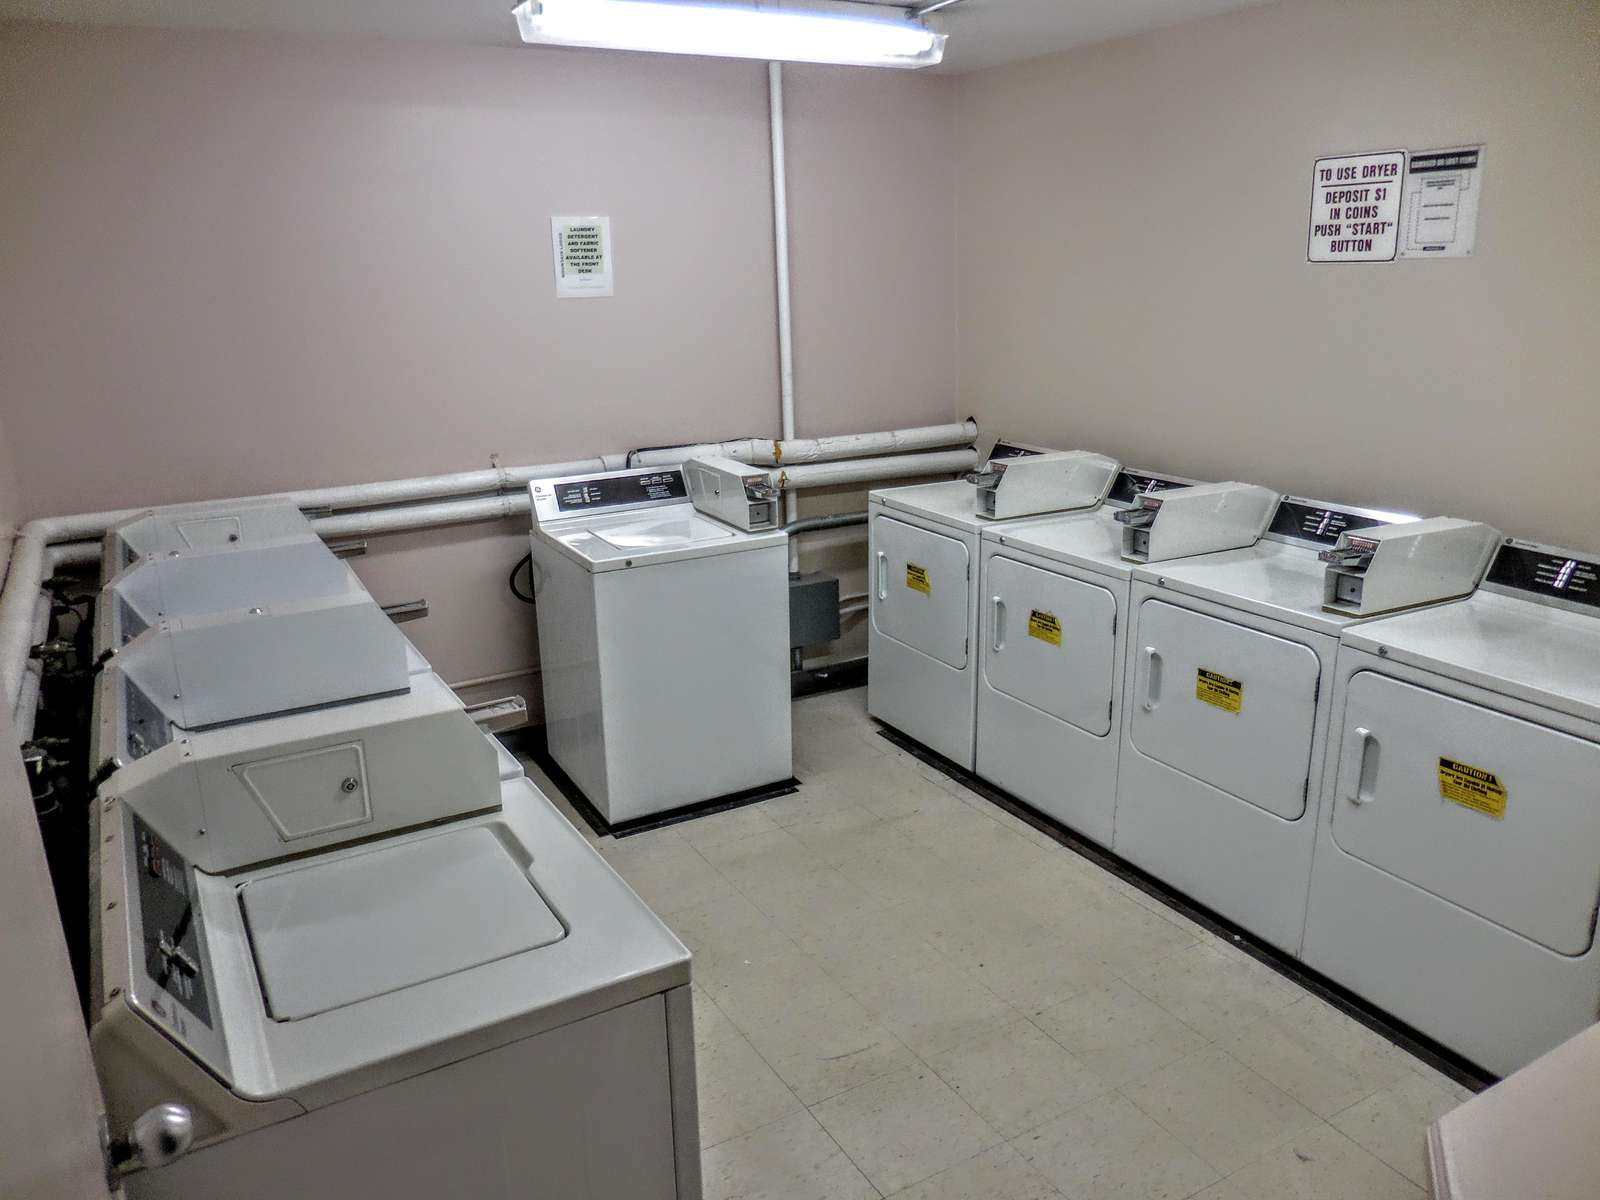 Coin-operated laundry facilities located down the hall from ML316